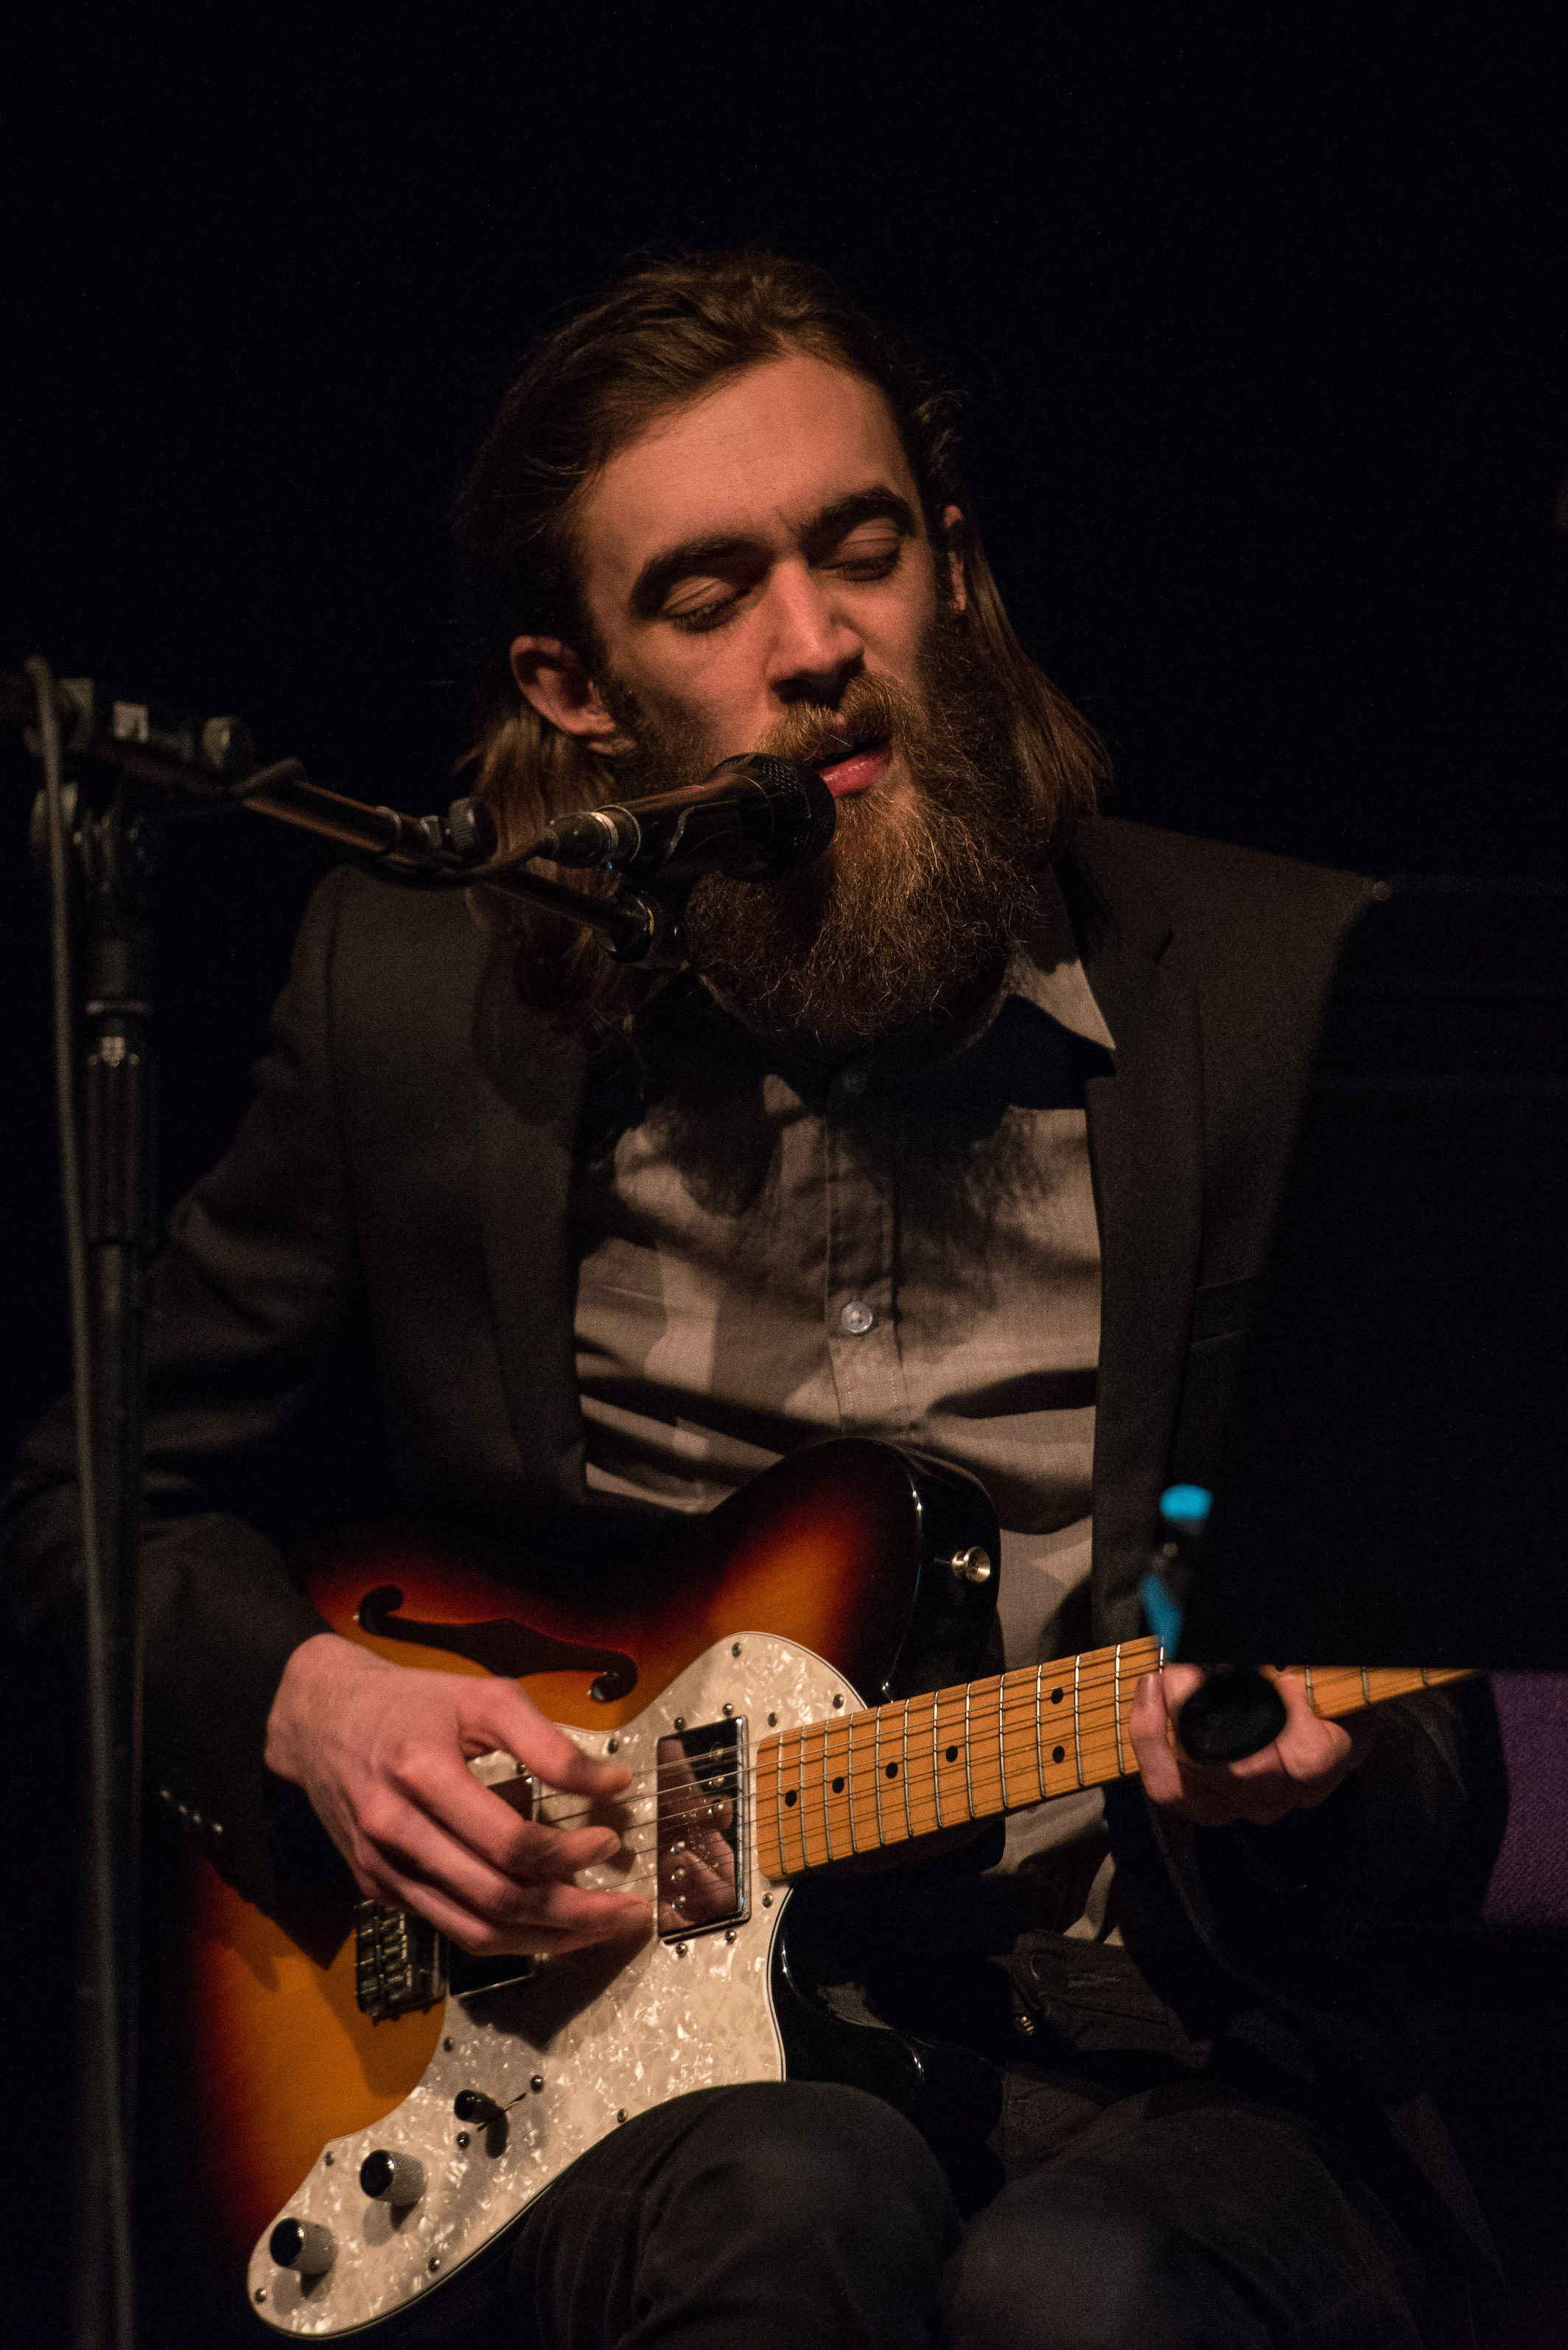 Bearded and slender, Keaton Henson faces his audience head on (Image by Joshua Atkins)